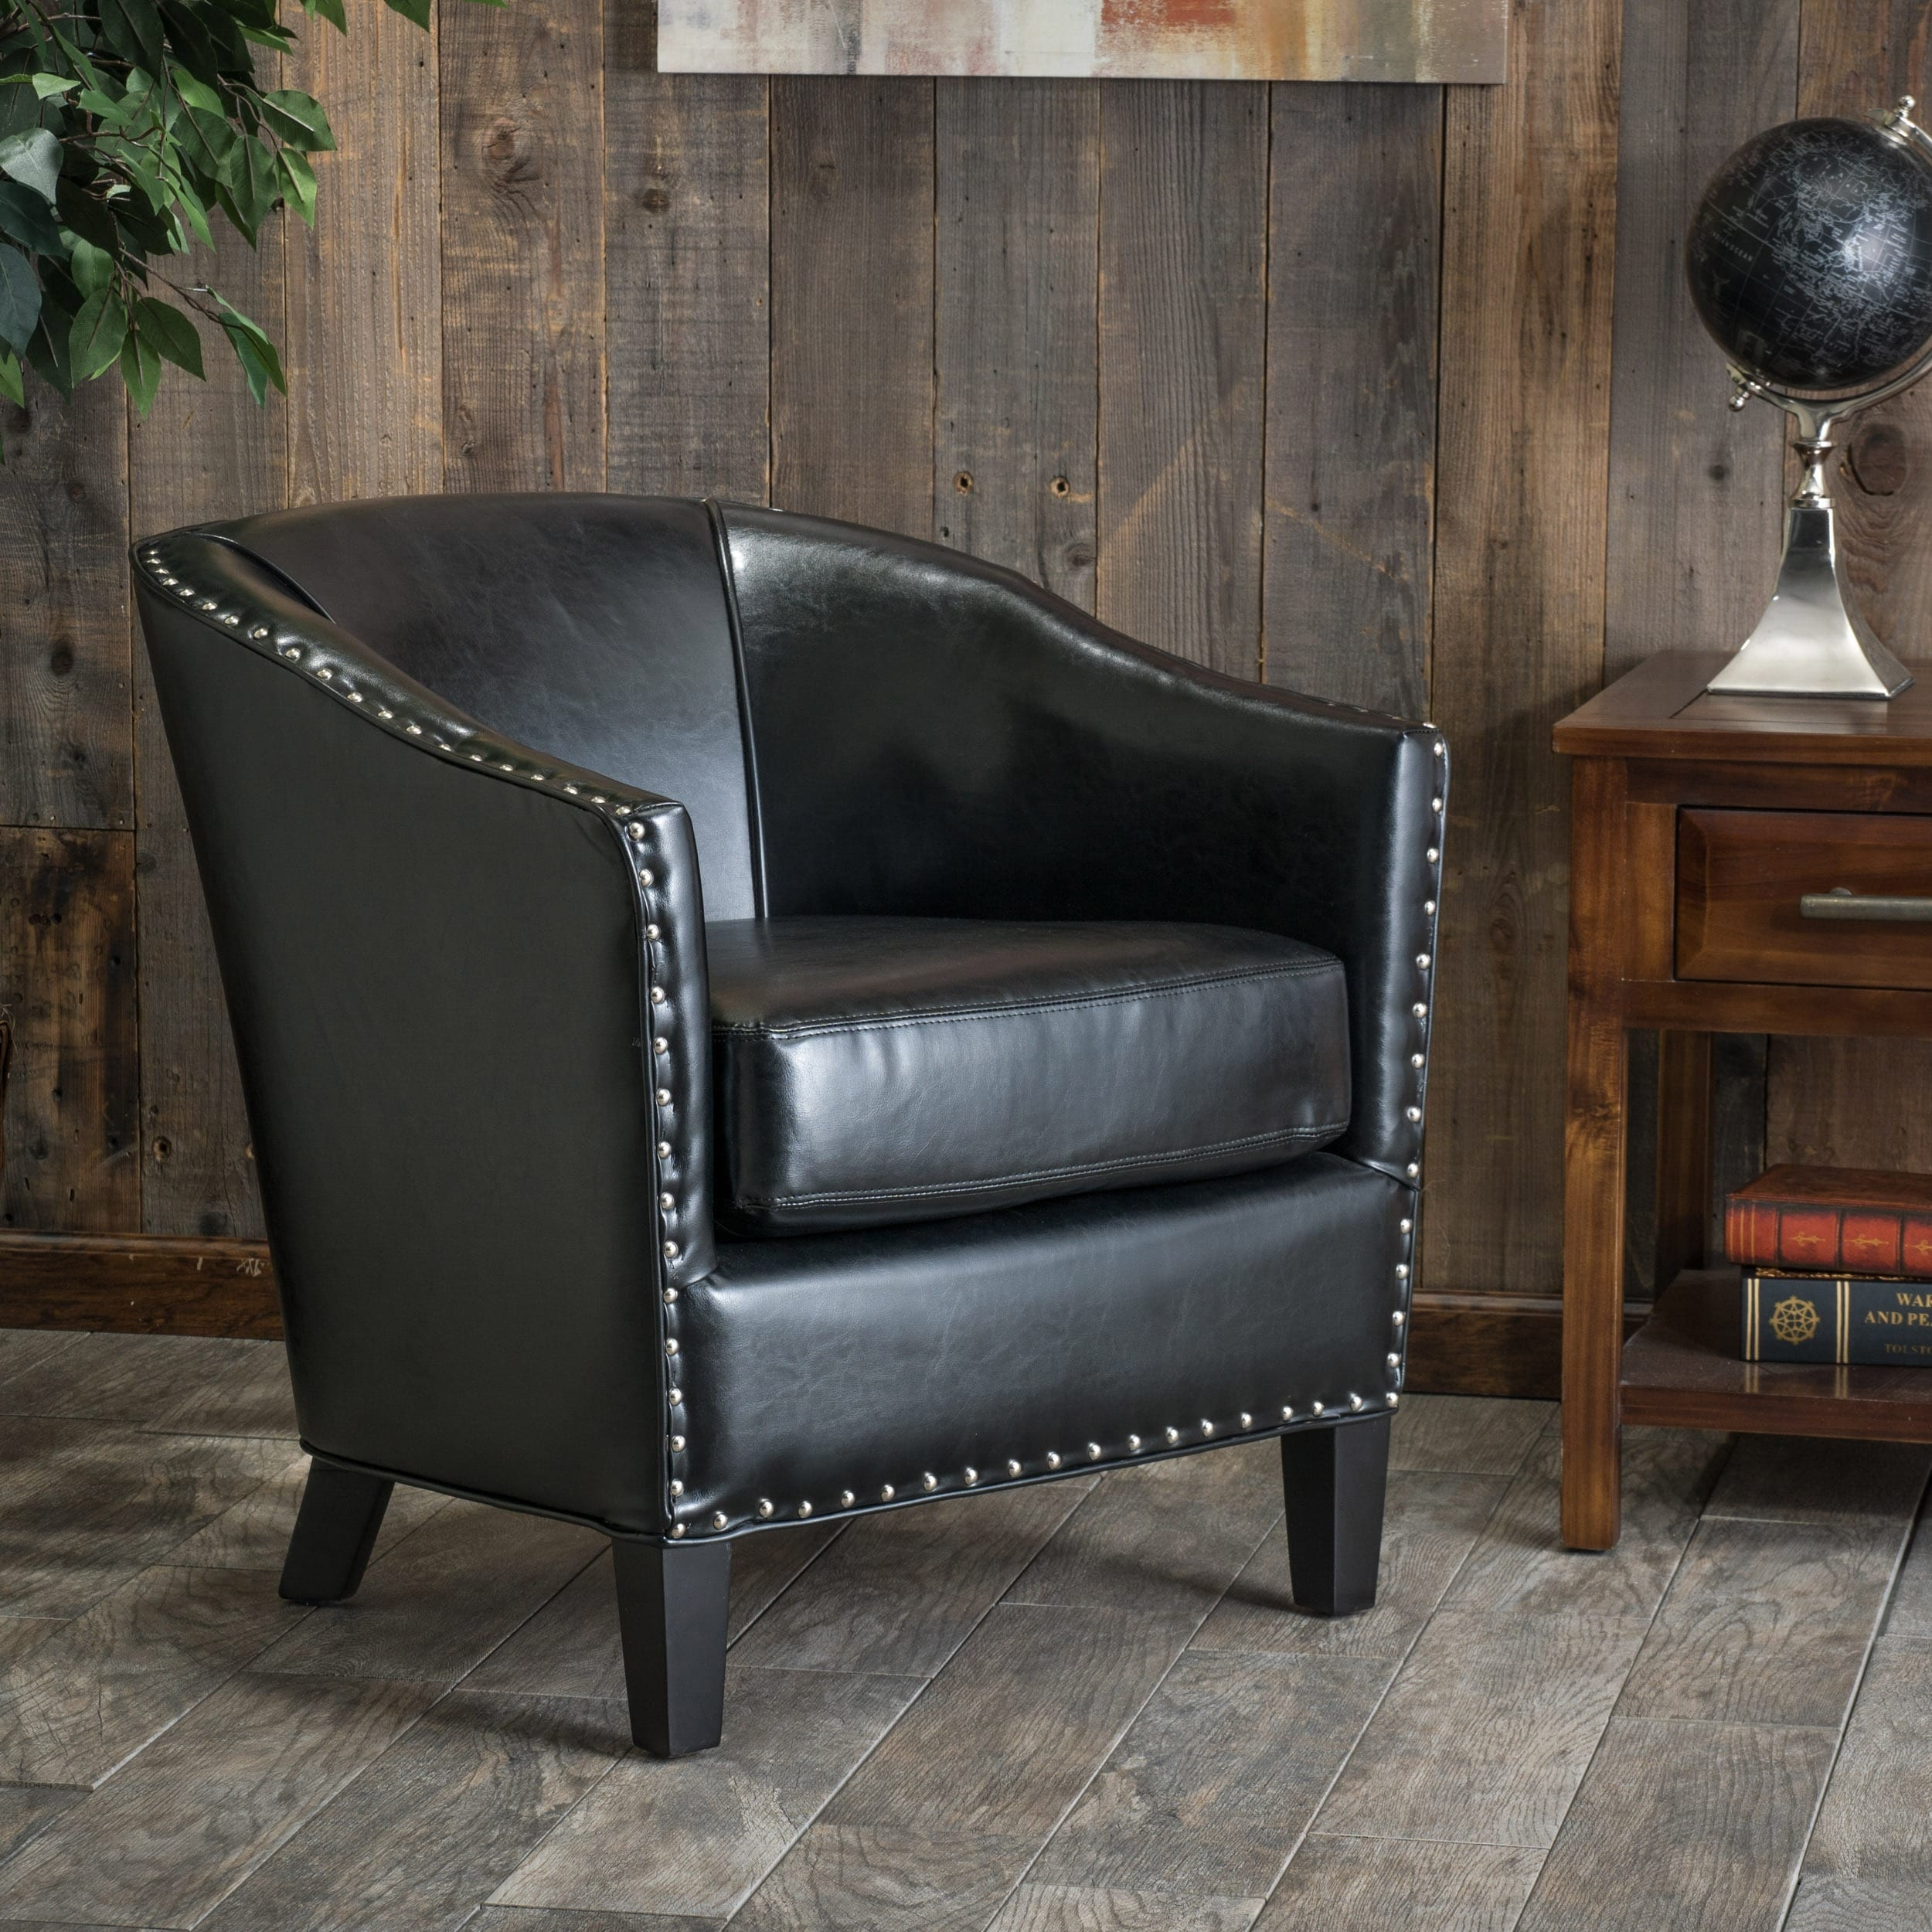 Buy Low Back Club Chairs Living Room Chairs Online at Overstock.com | Our Best Living Room Furniture Deals & Buy Low Back Club Chairs Living Room Chairs Online at Overstock.com ...